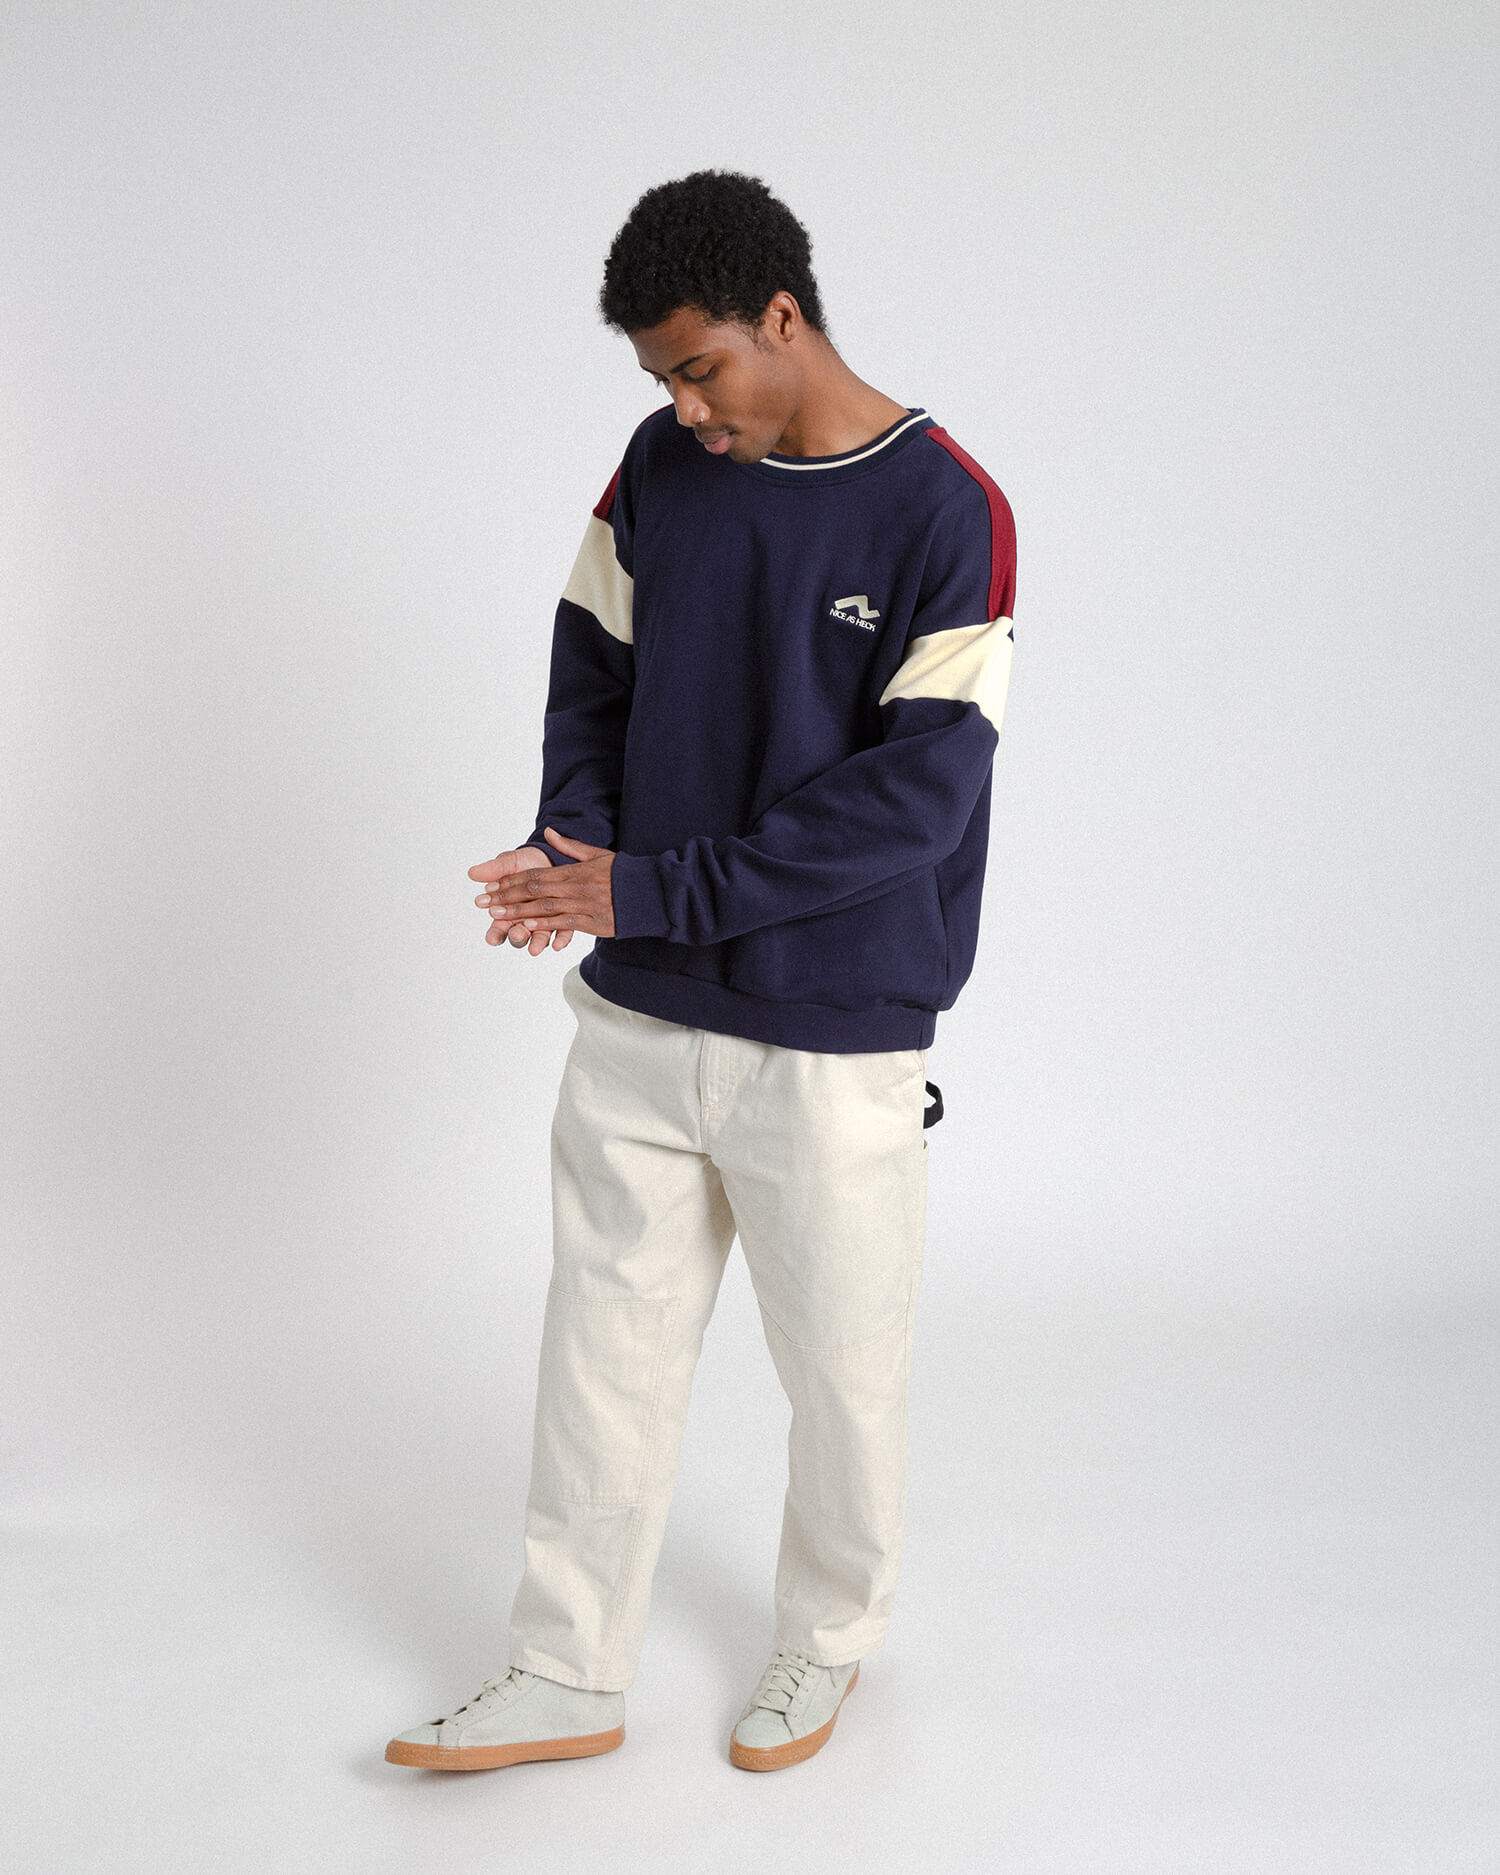 male model wearing the navy campfire crewneck front view